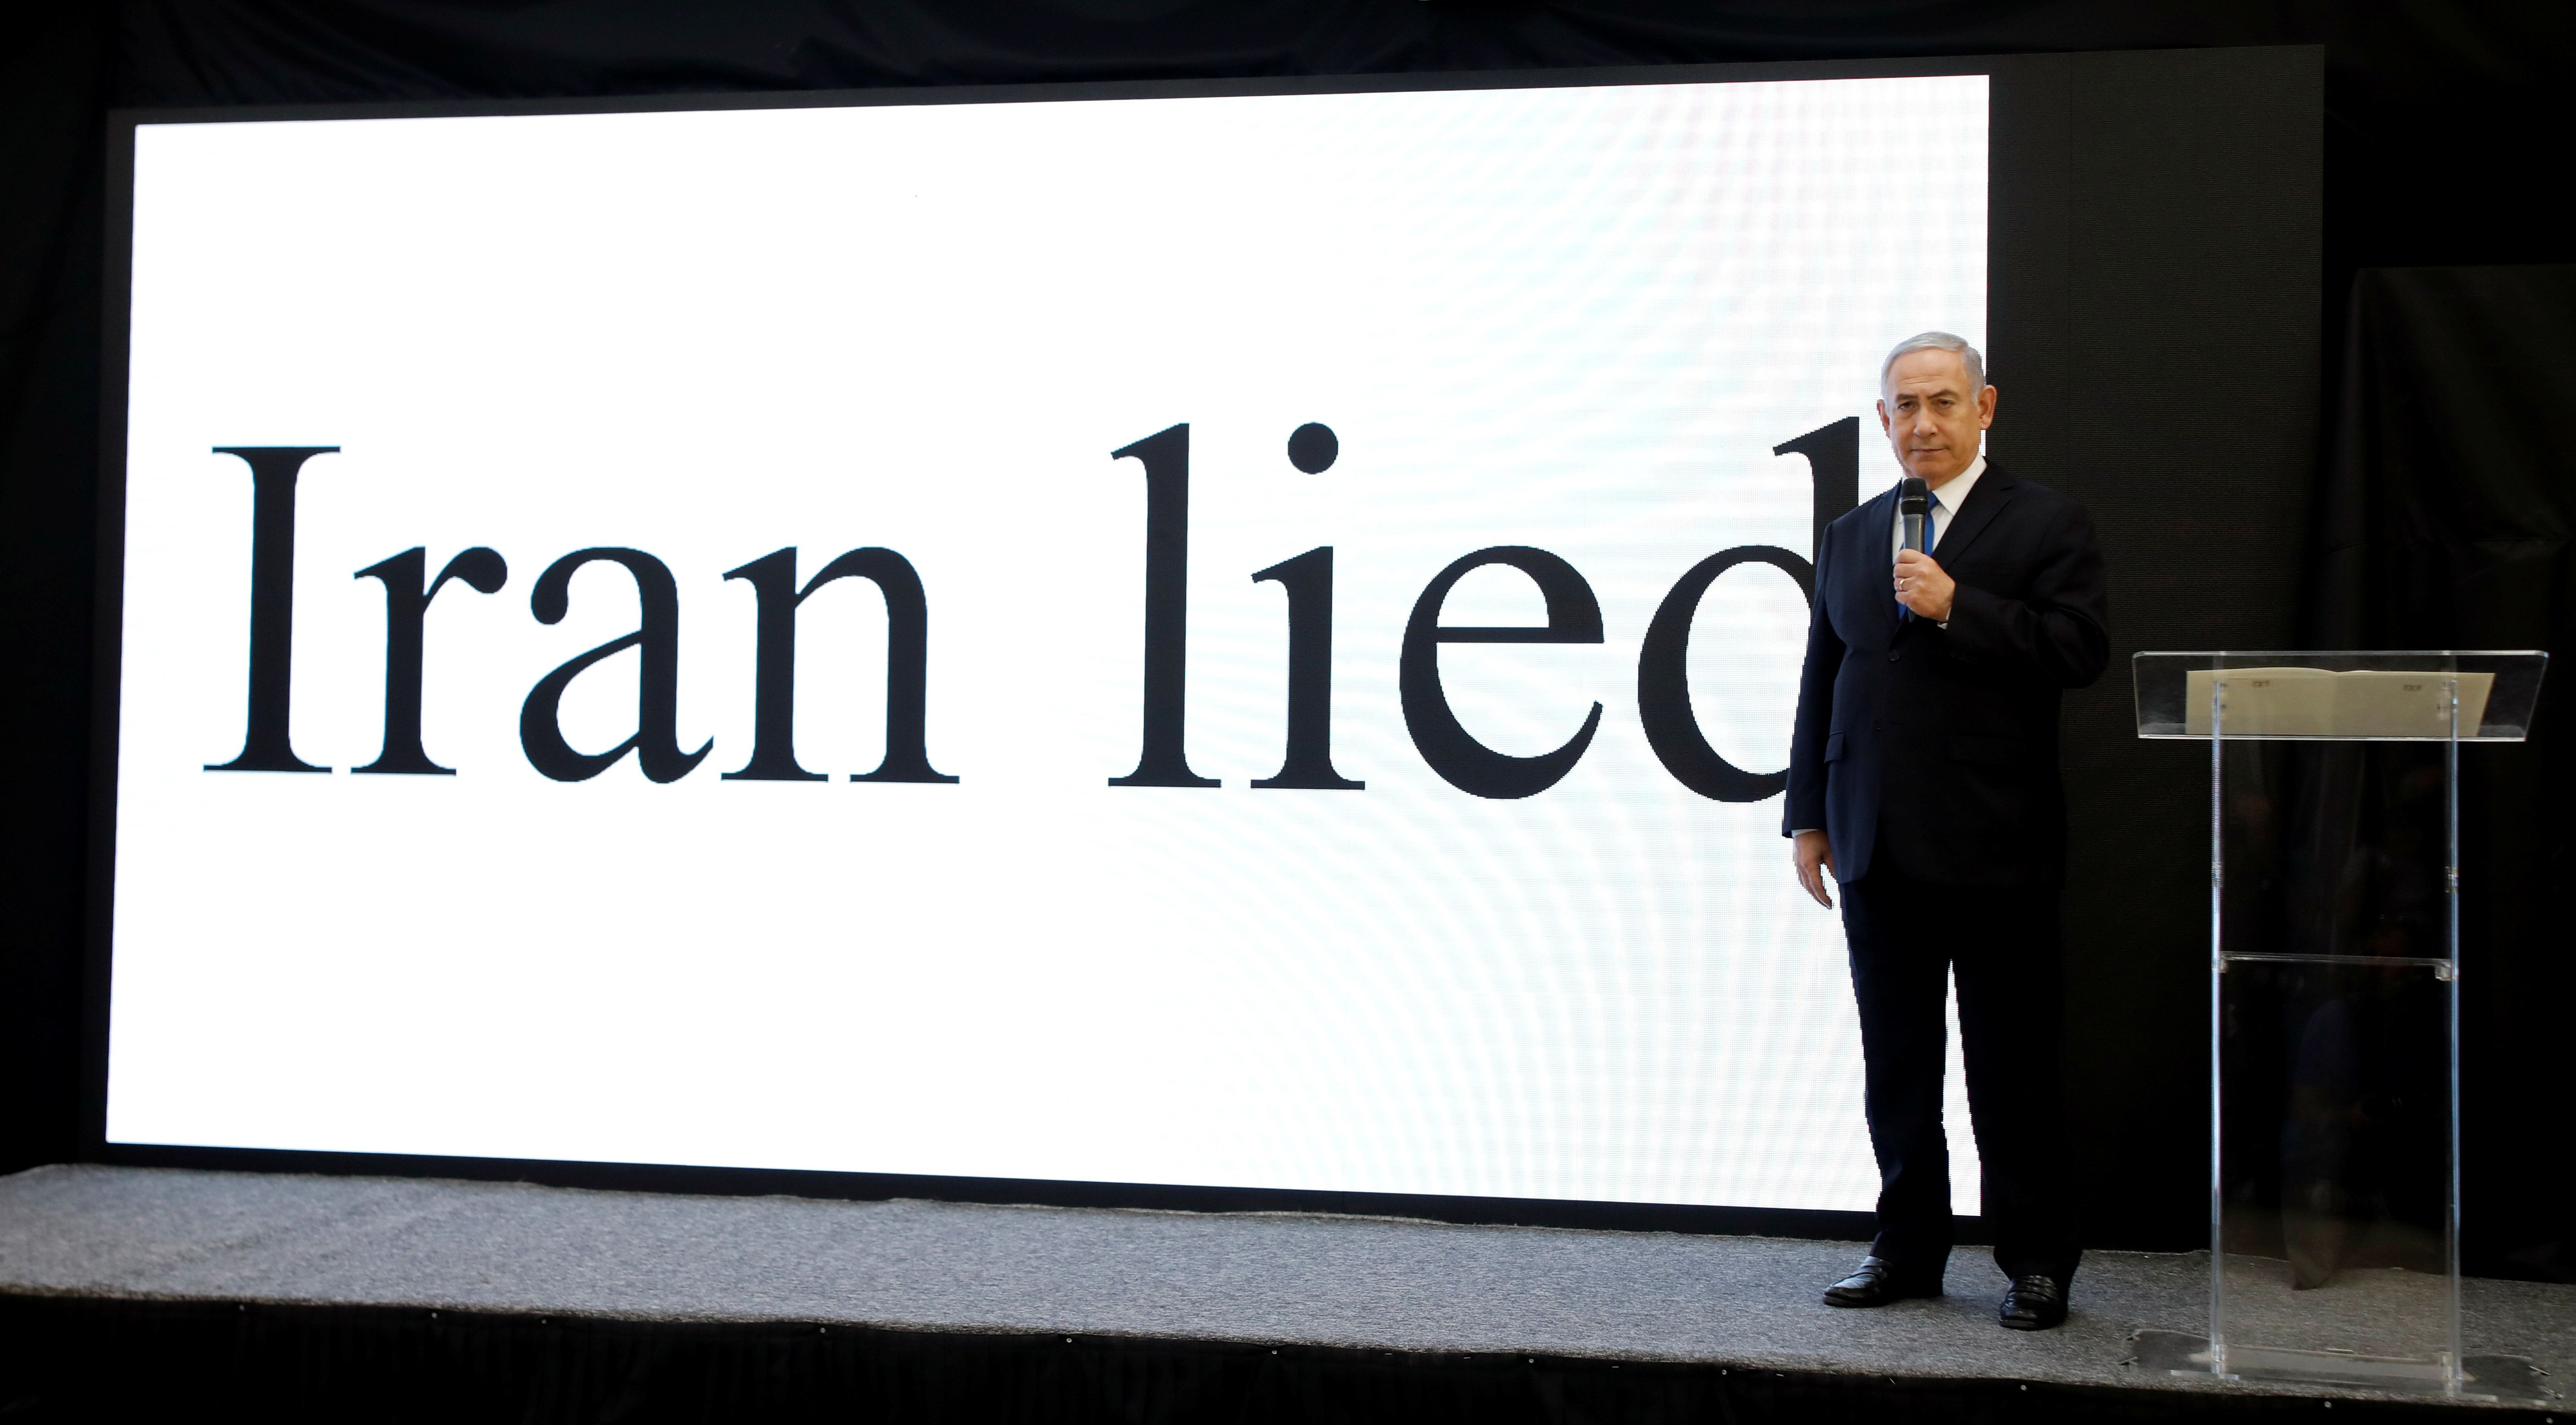 Netanyahu Accuses Iran With Ridiculously Basic Power Point